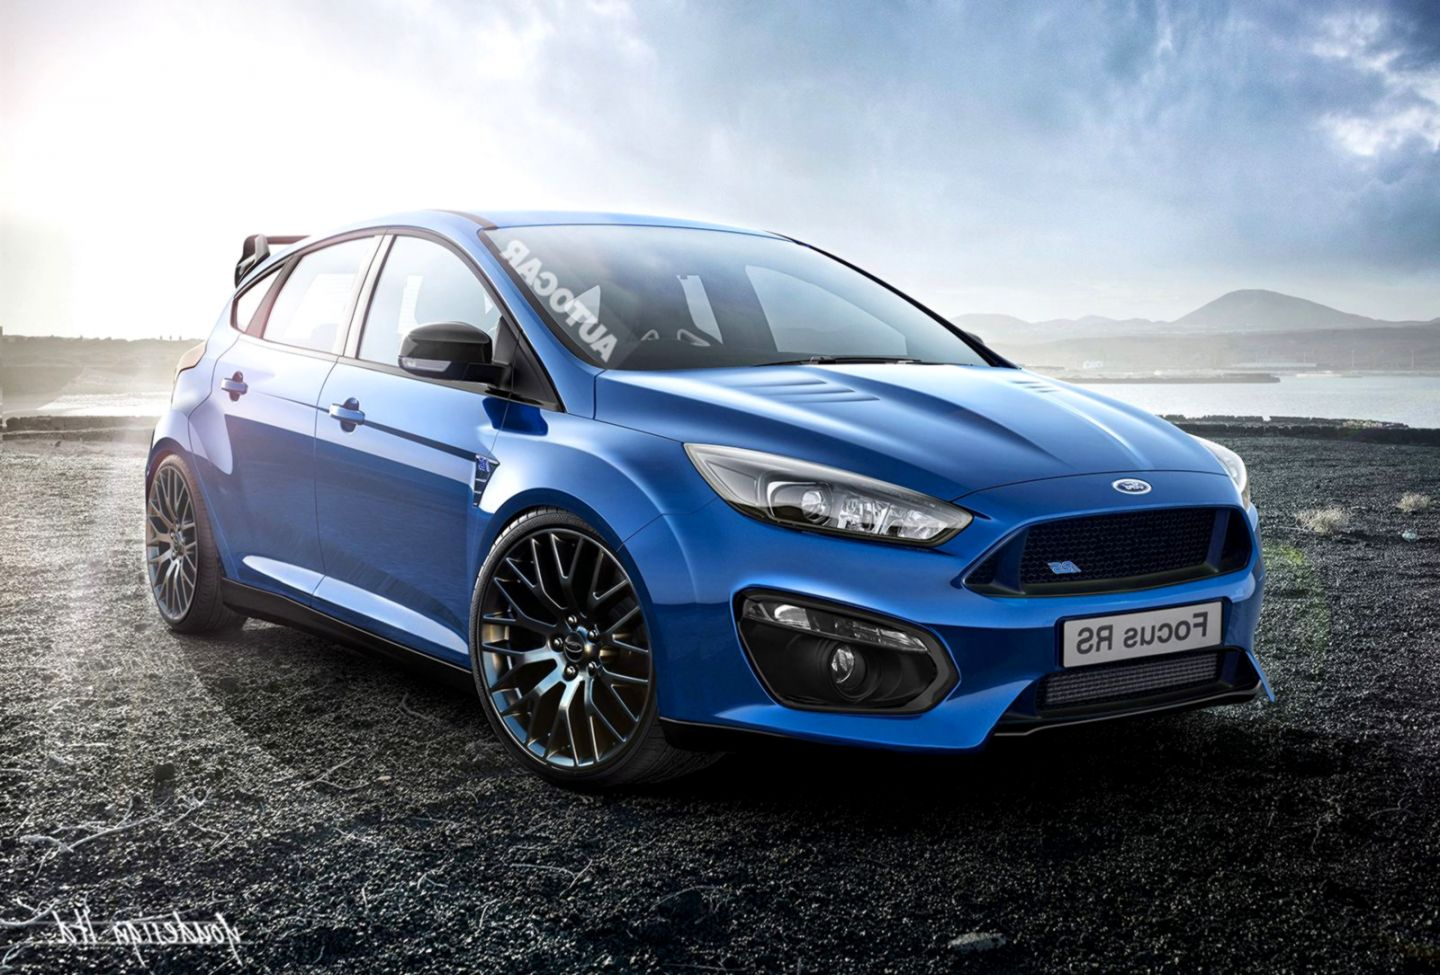 Ford Focus 2015 Cars Wallpapers Wallpapers Legend